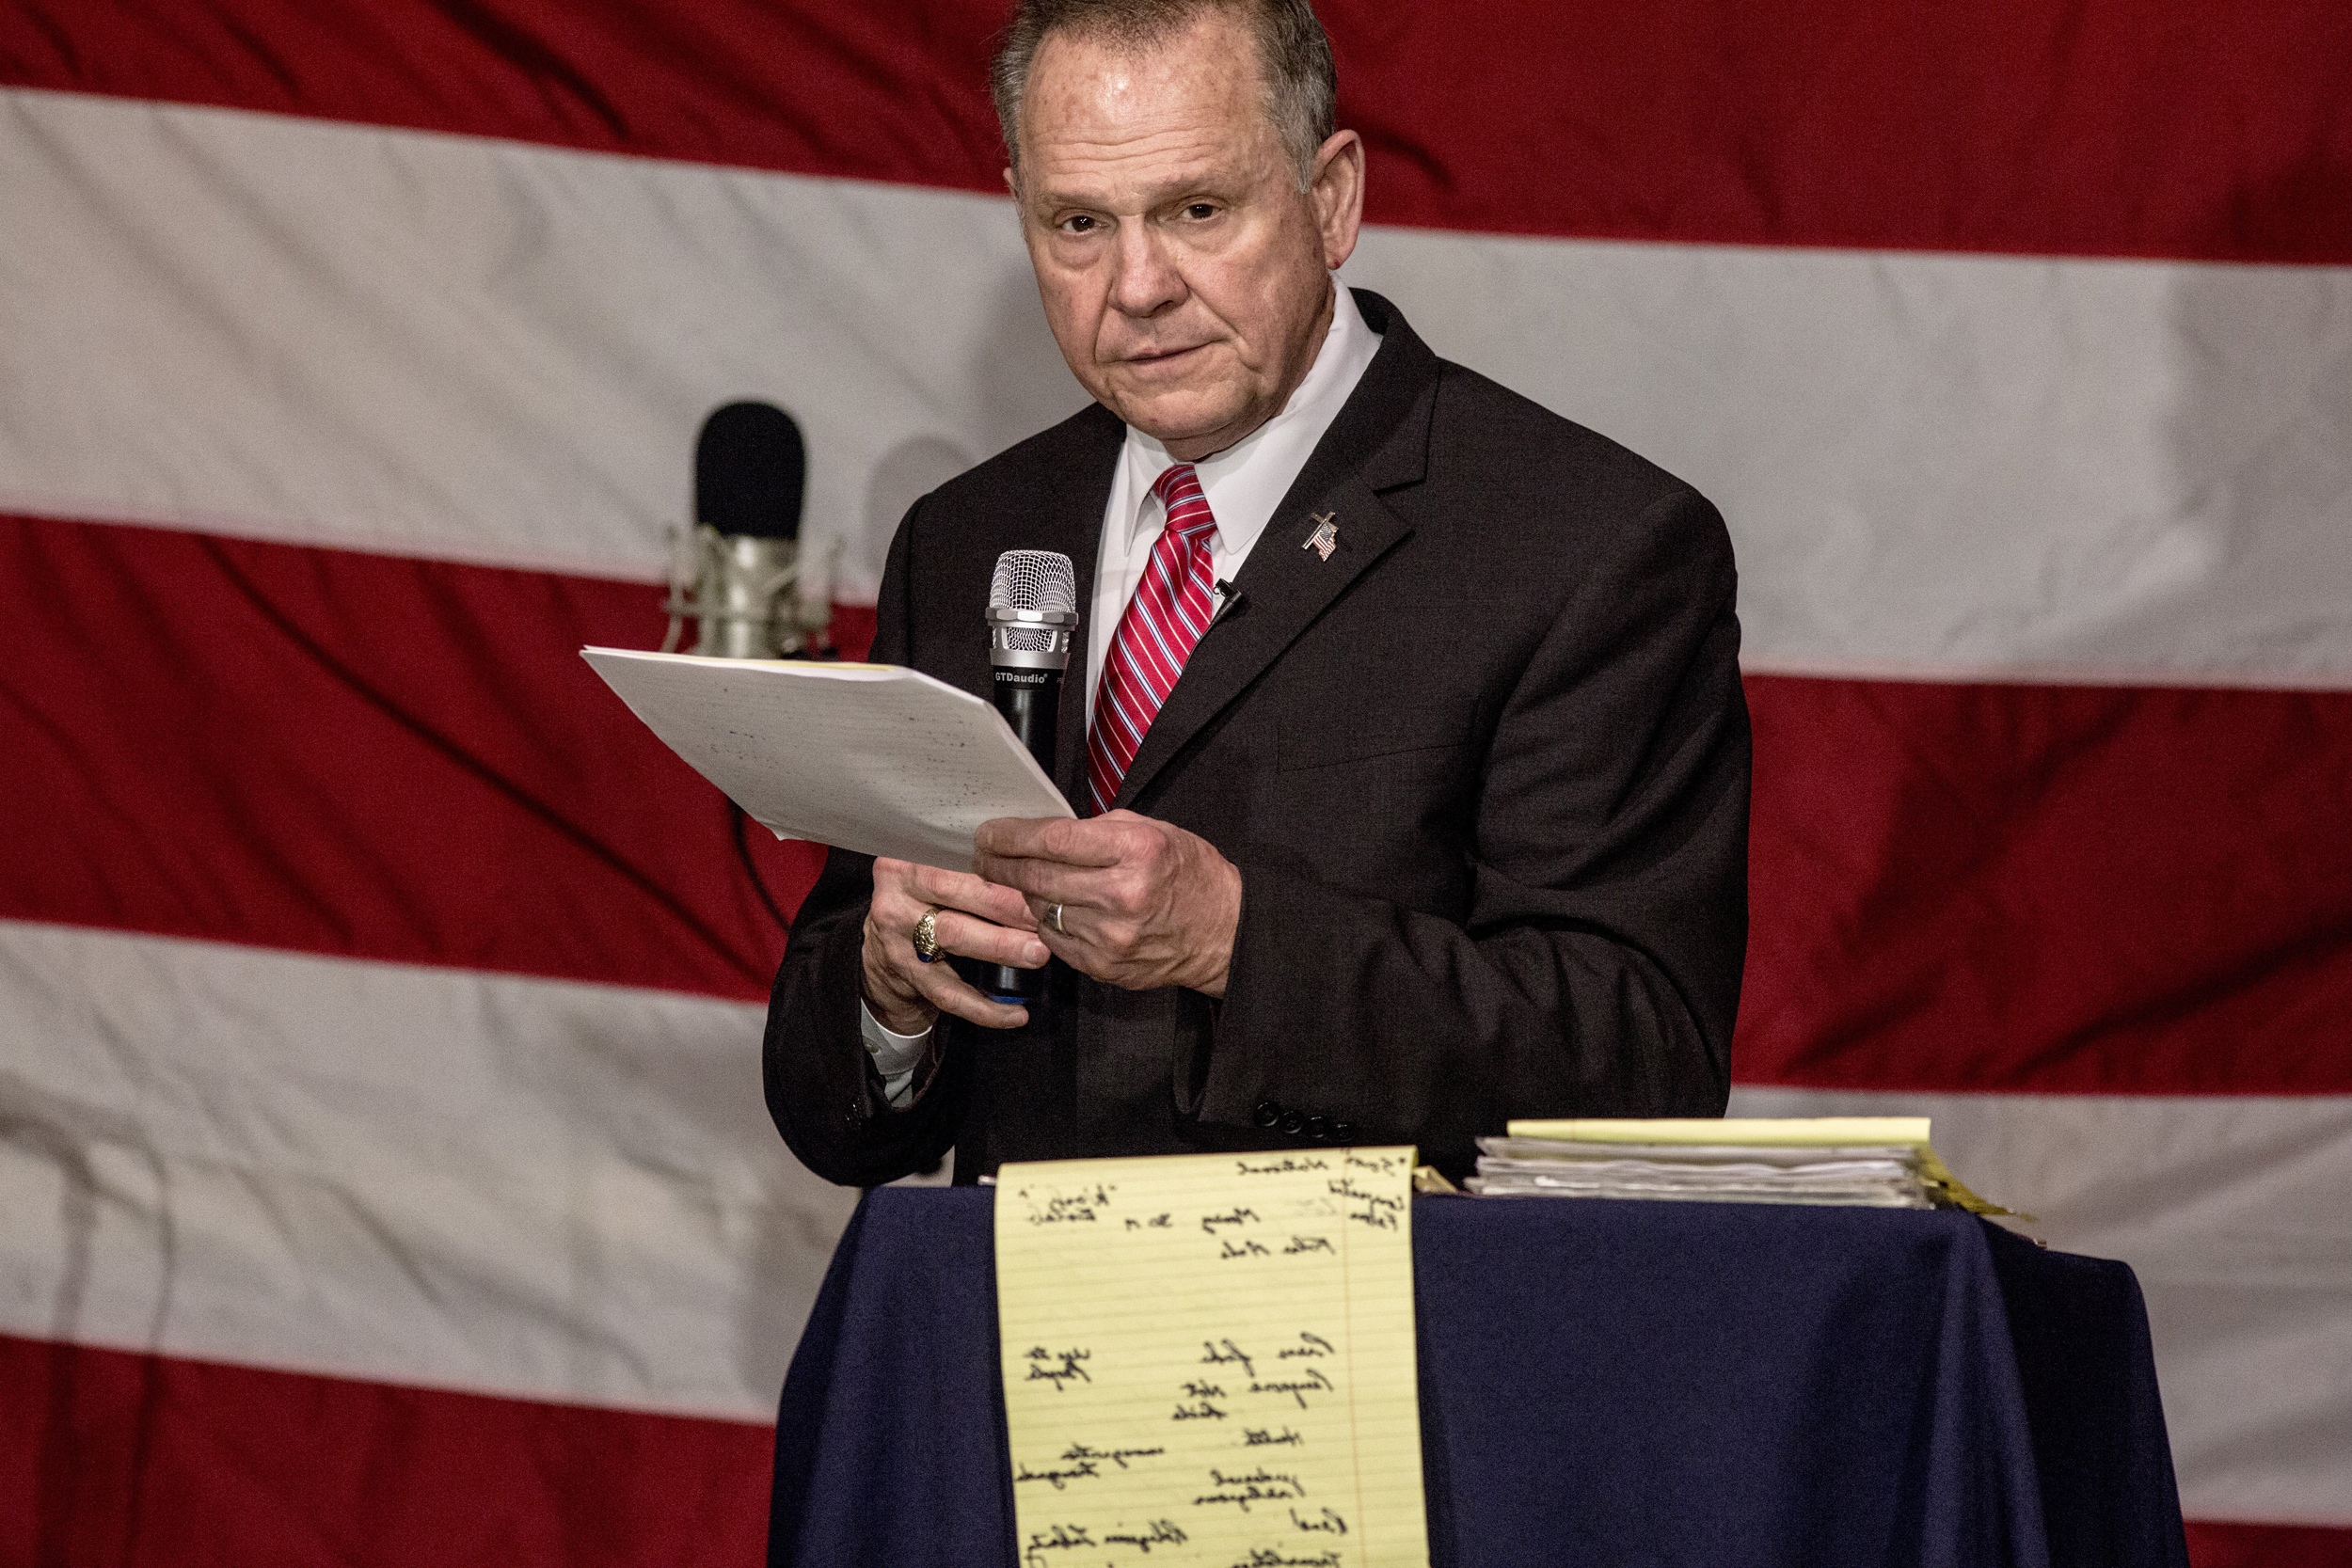 Image: Roy Moore speaks at a campaign rally